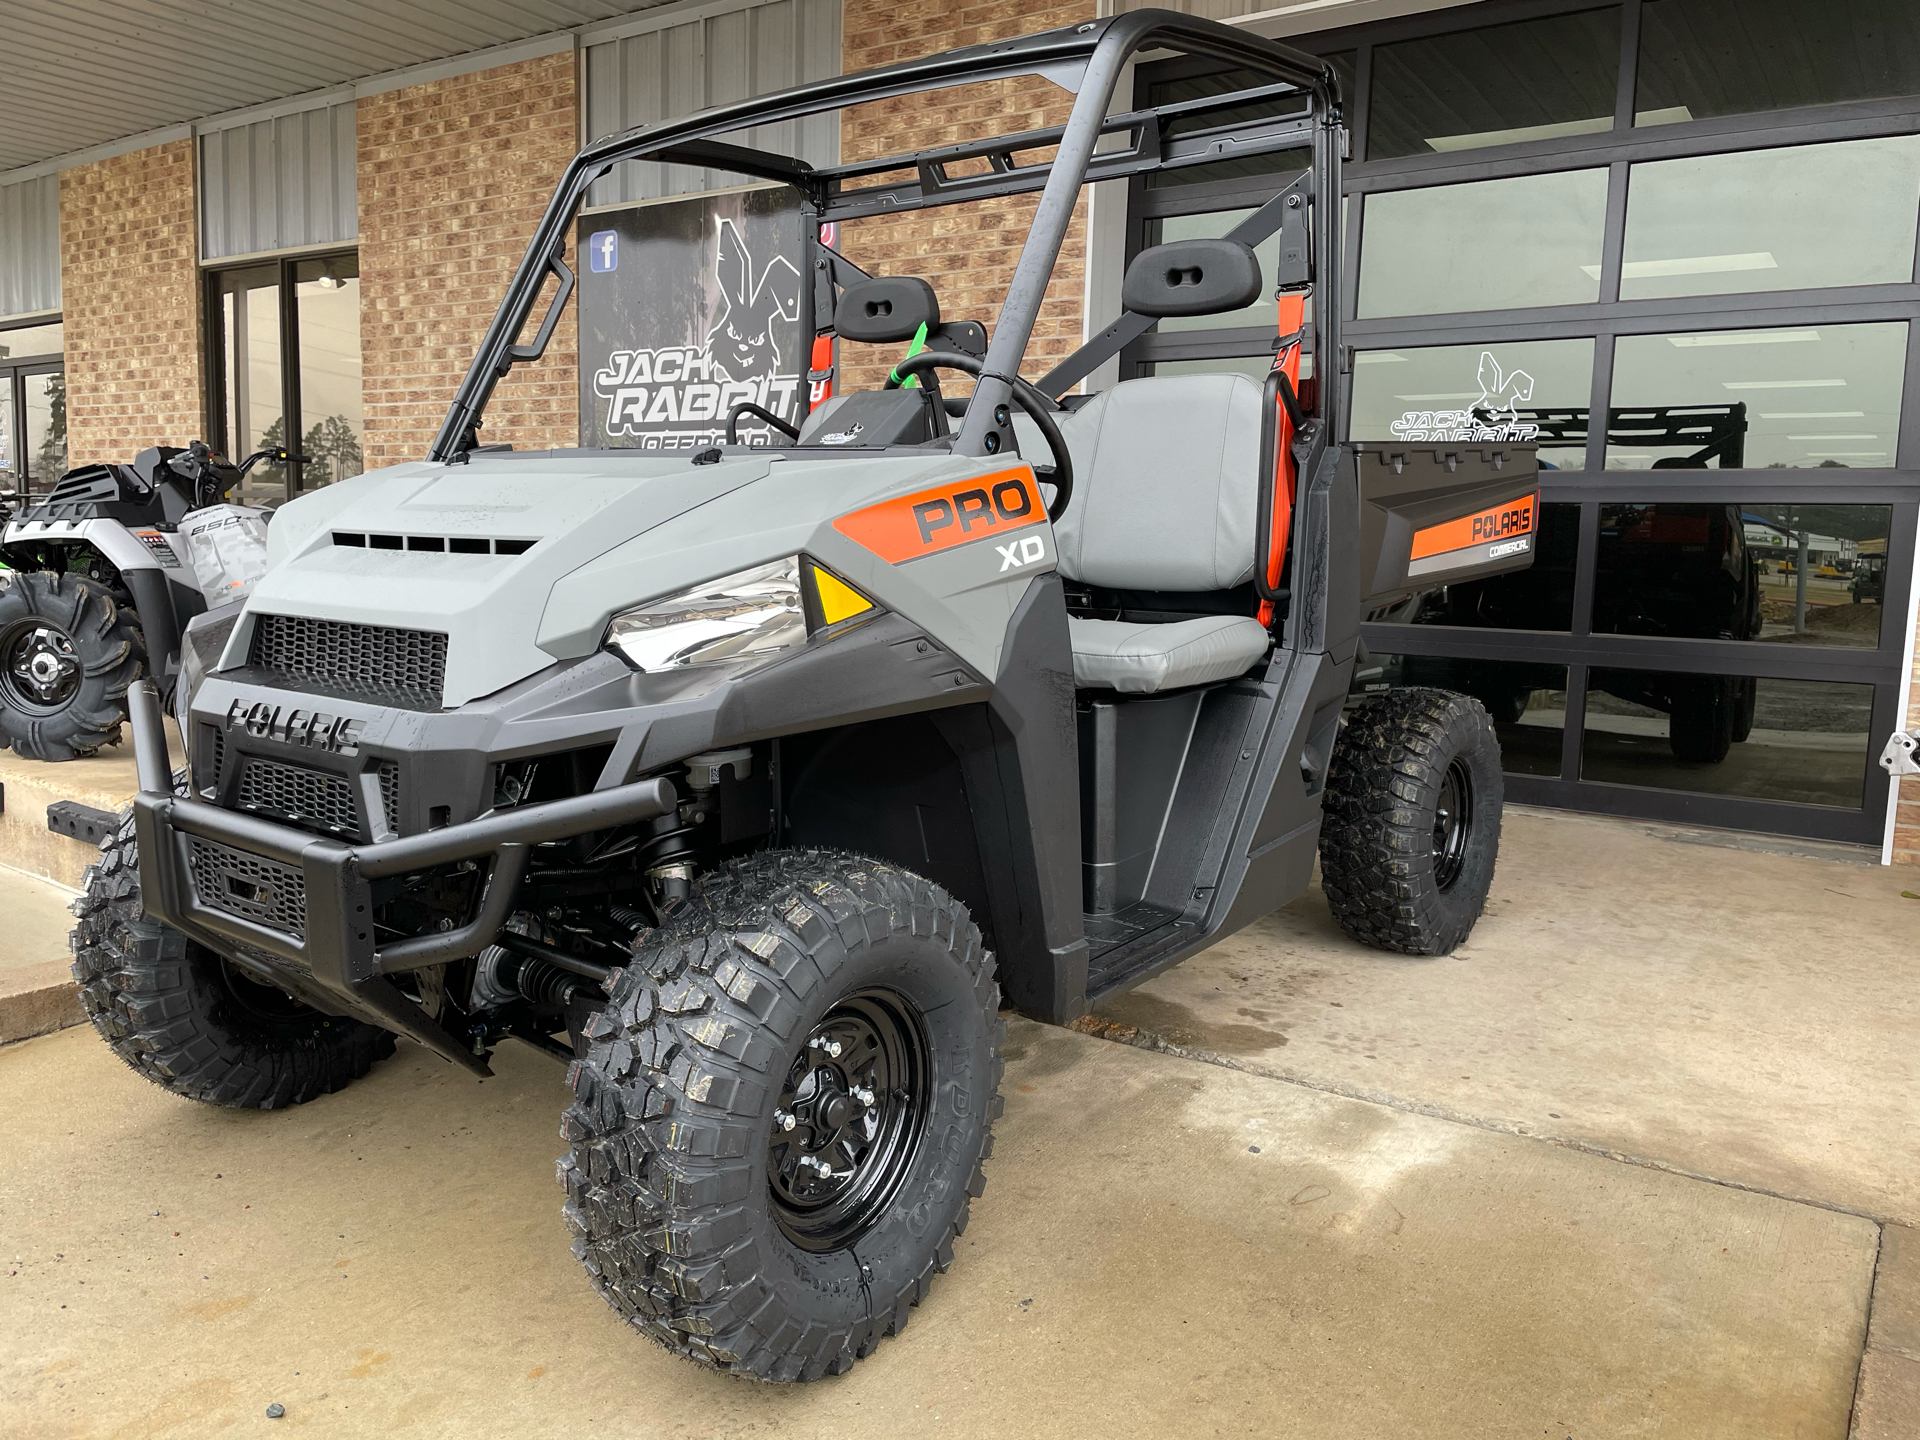 2020 Pro XD PRO XD 2000G AWD in Marshall, Texas - Photo 2